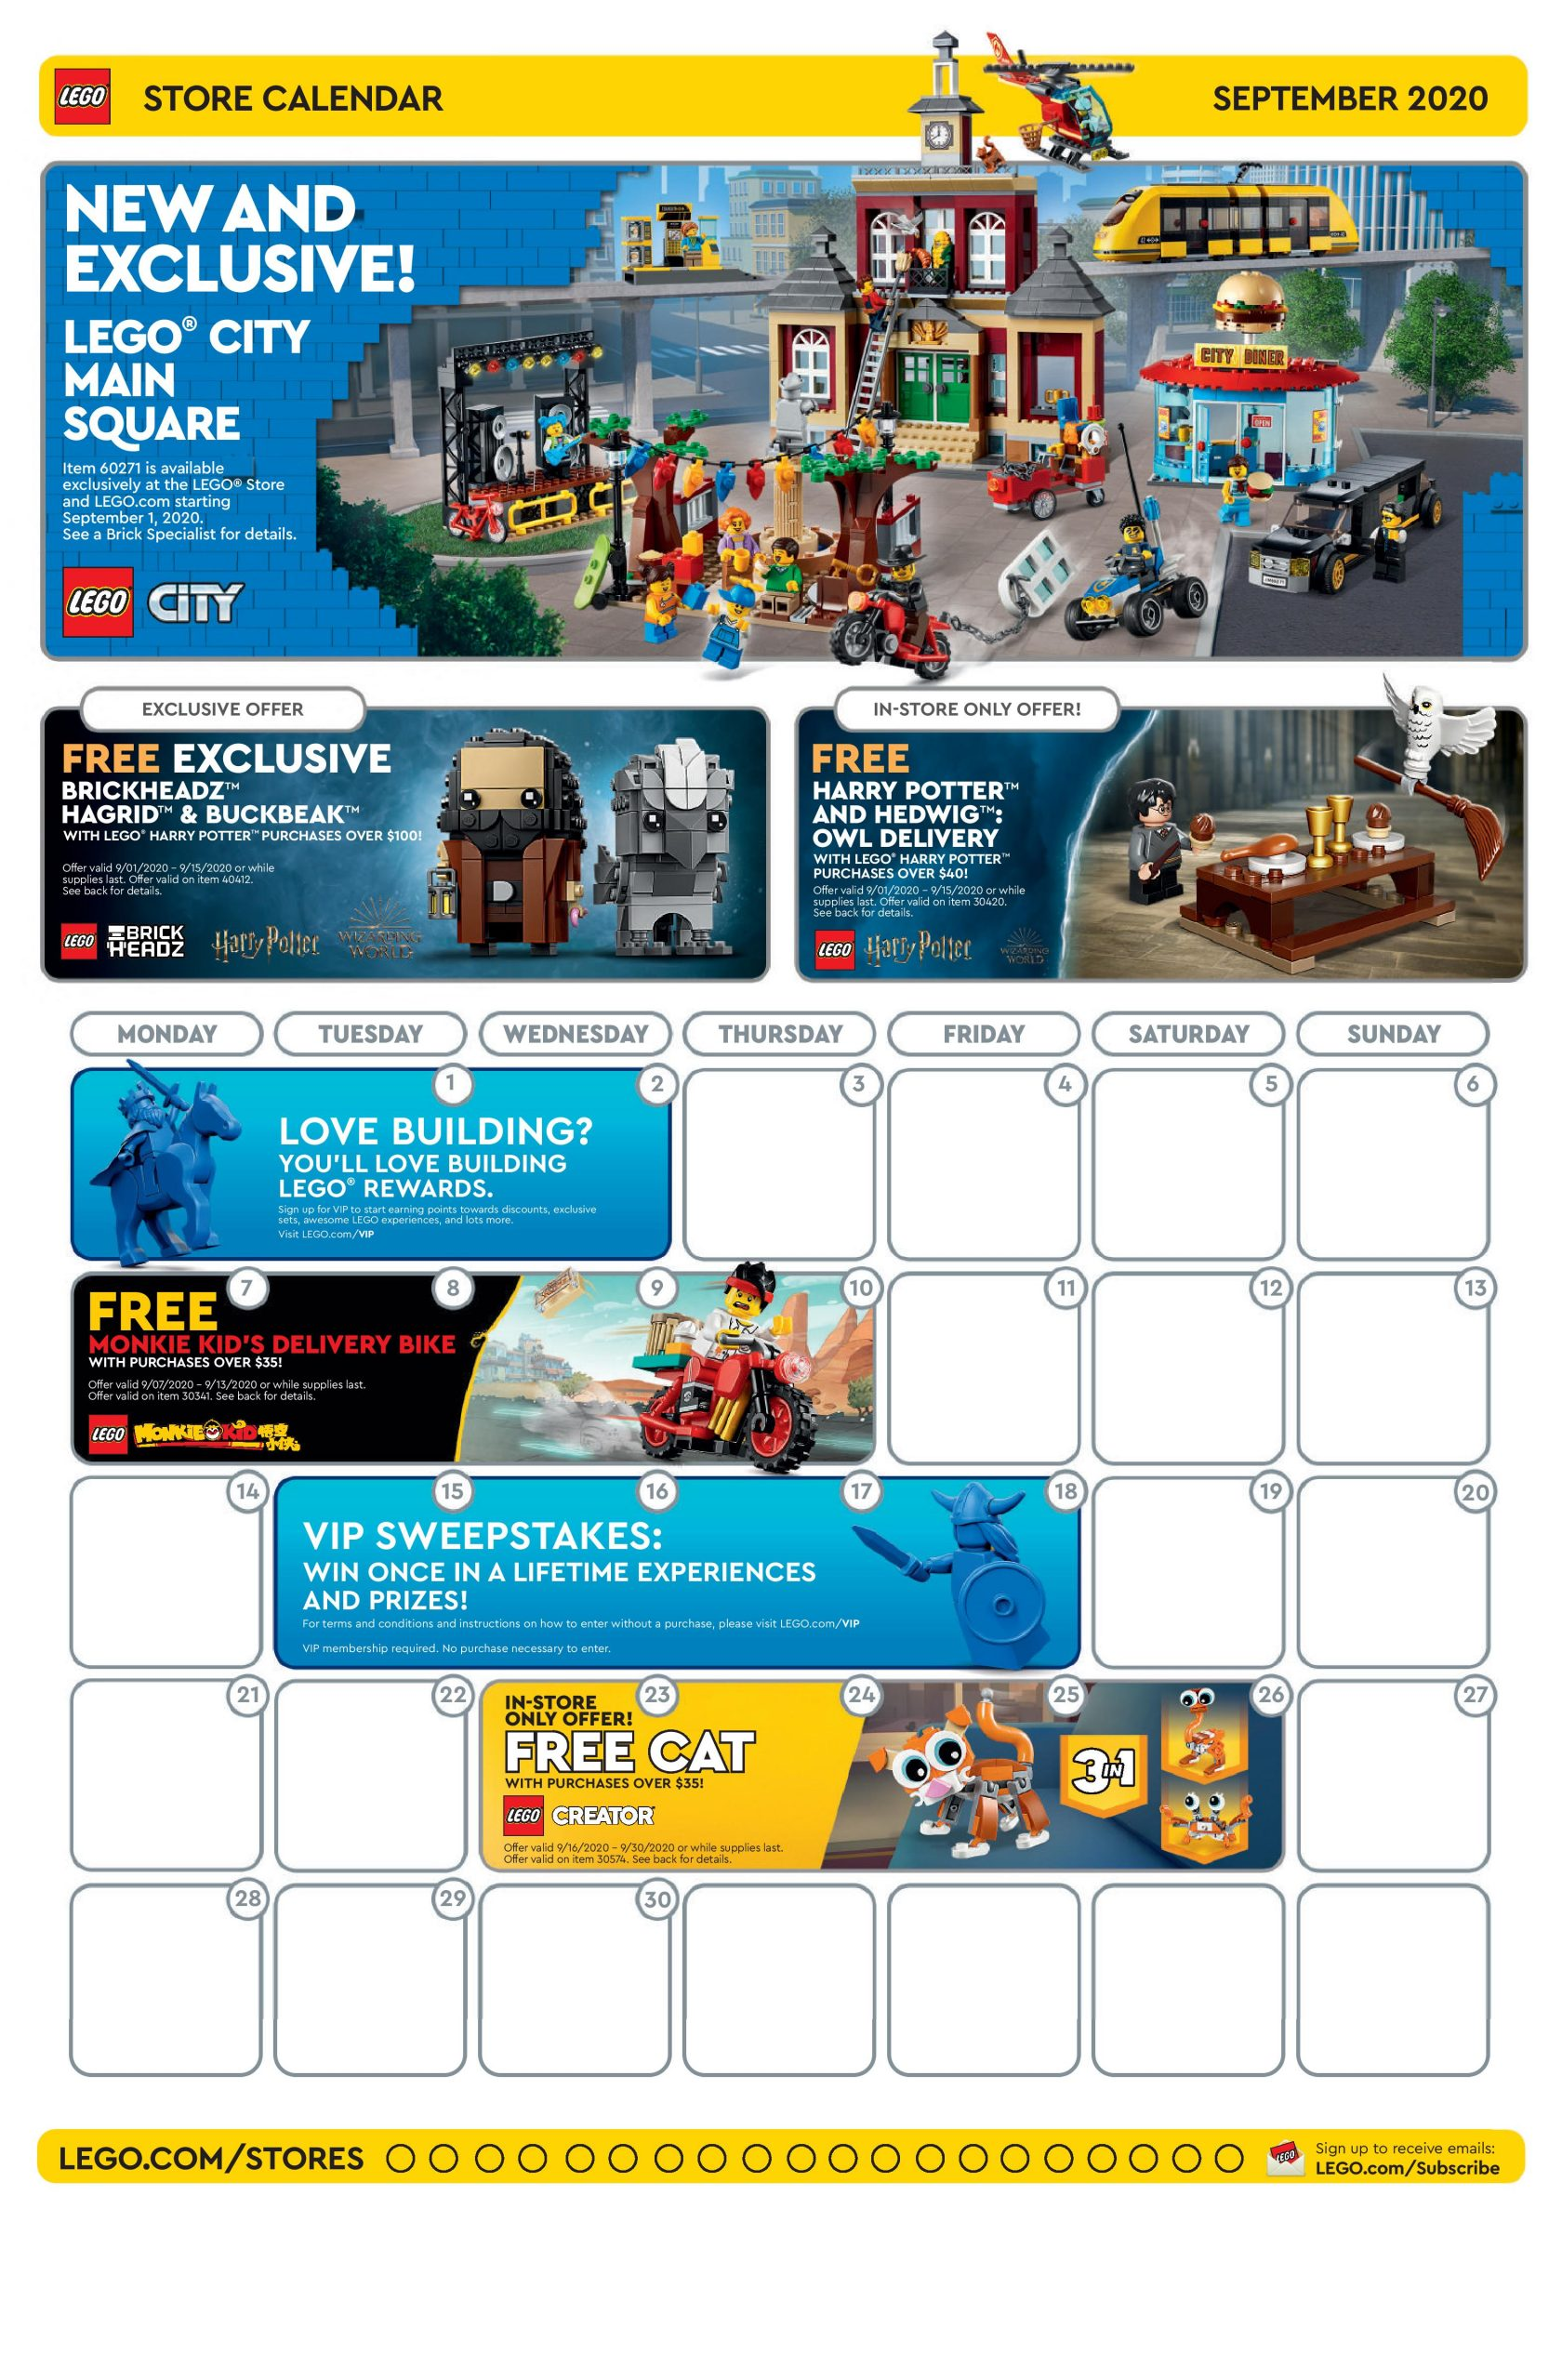 LEGO September 2020 Store Calendar Promotions & Events – The Brick Fan